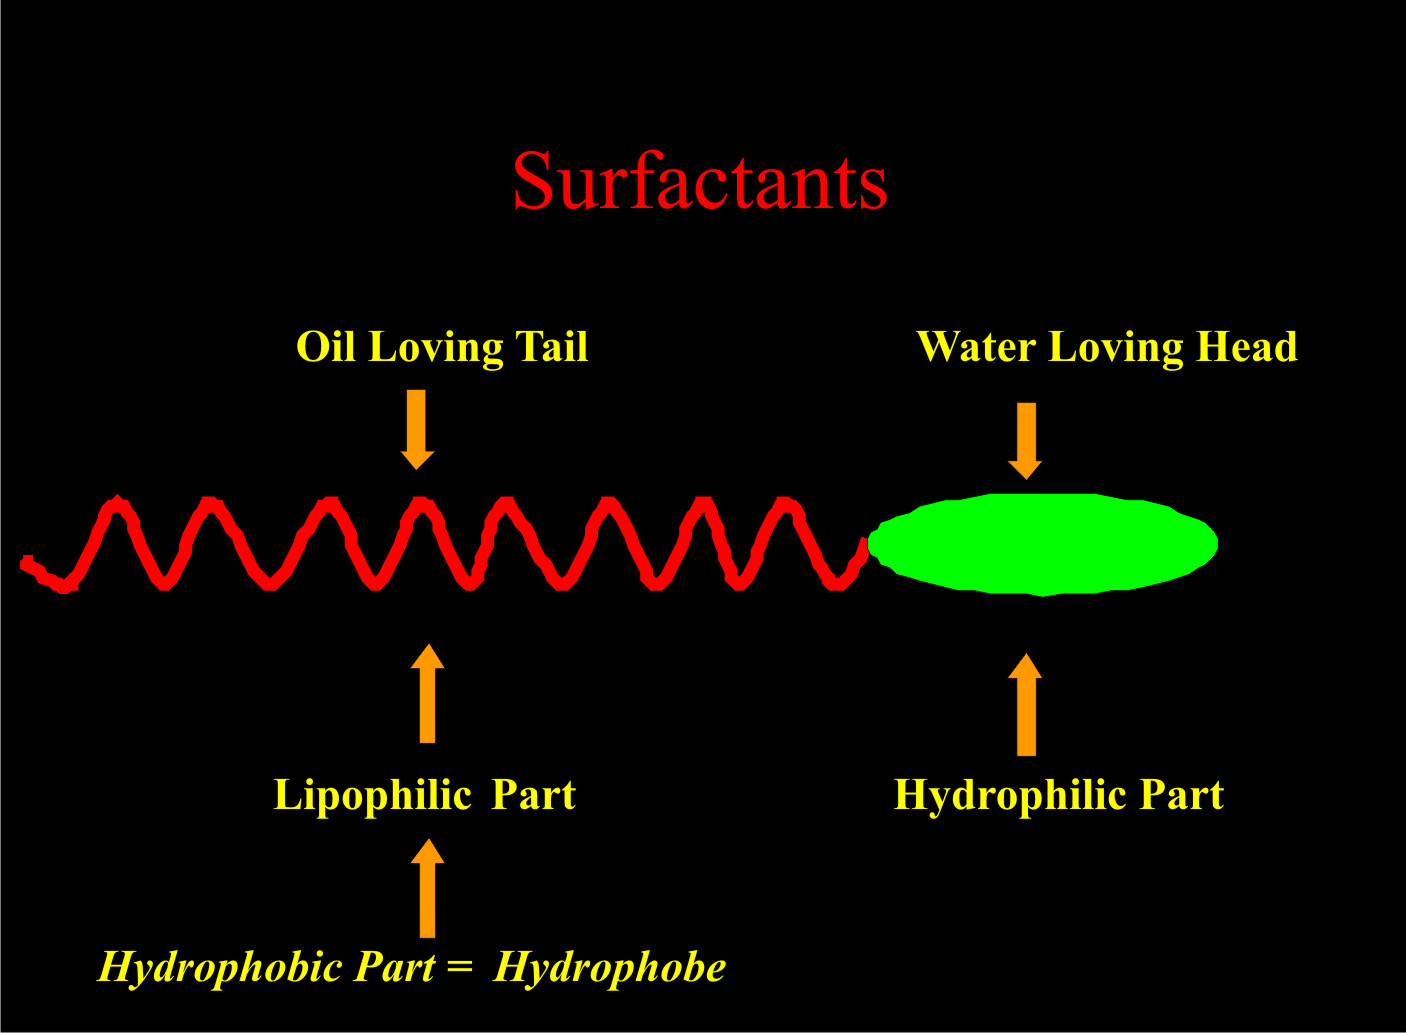 Components of a surfactant molecule